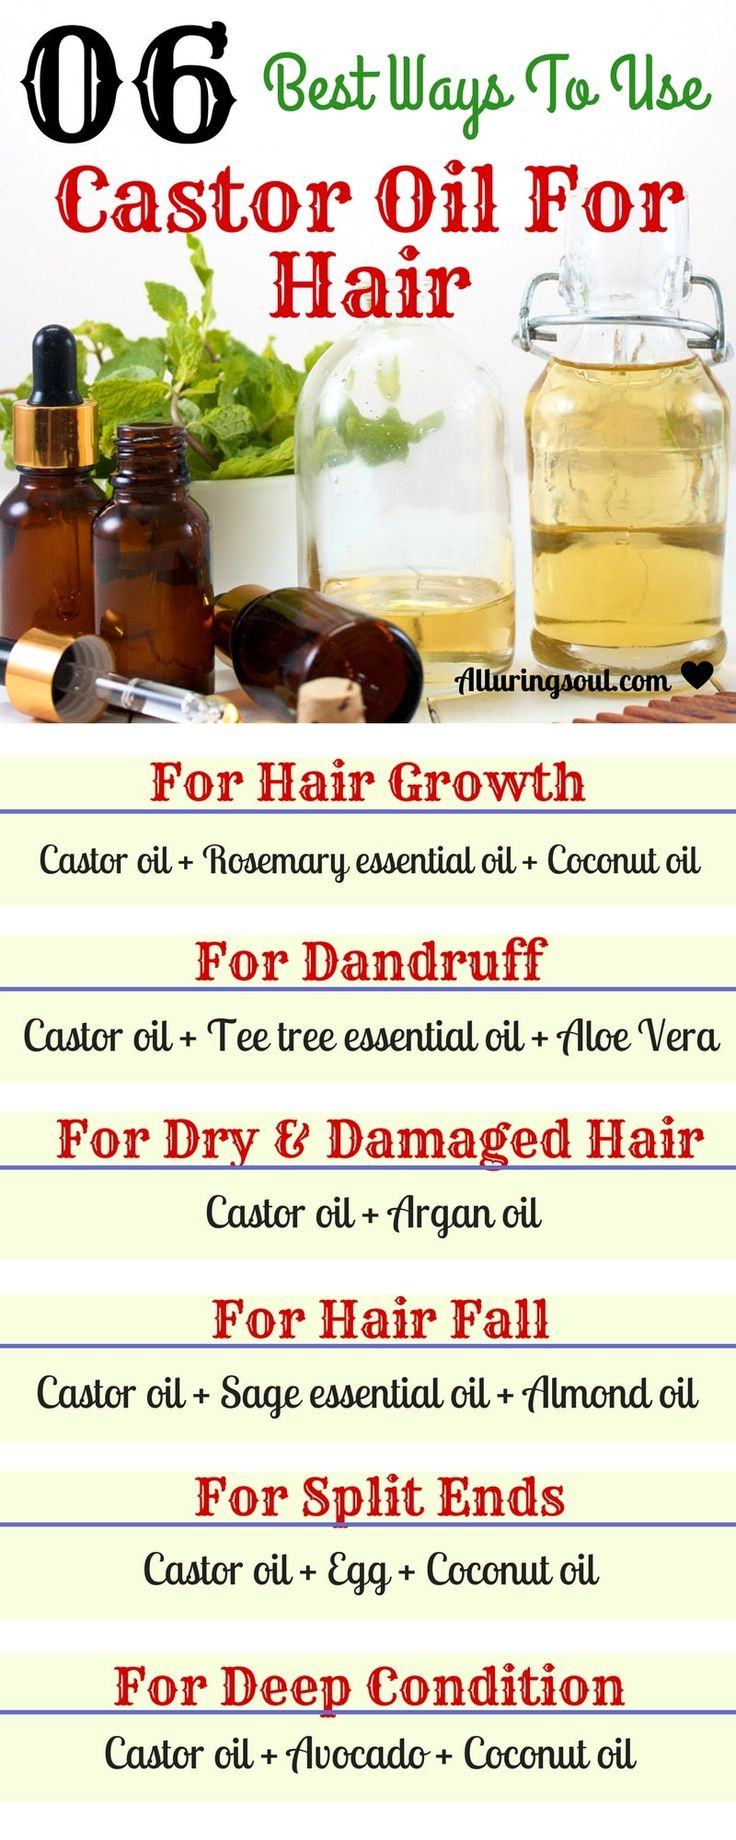 Castor oil is best for hair growth and other hair problems like dry, frizzy hair...